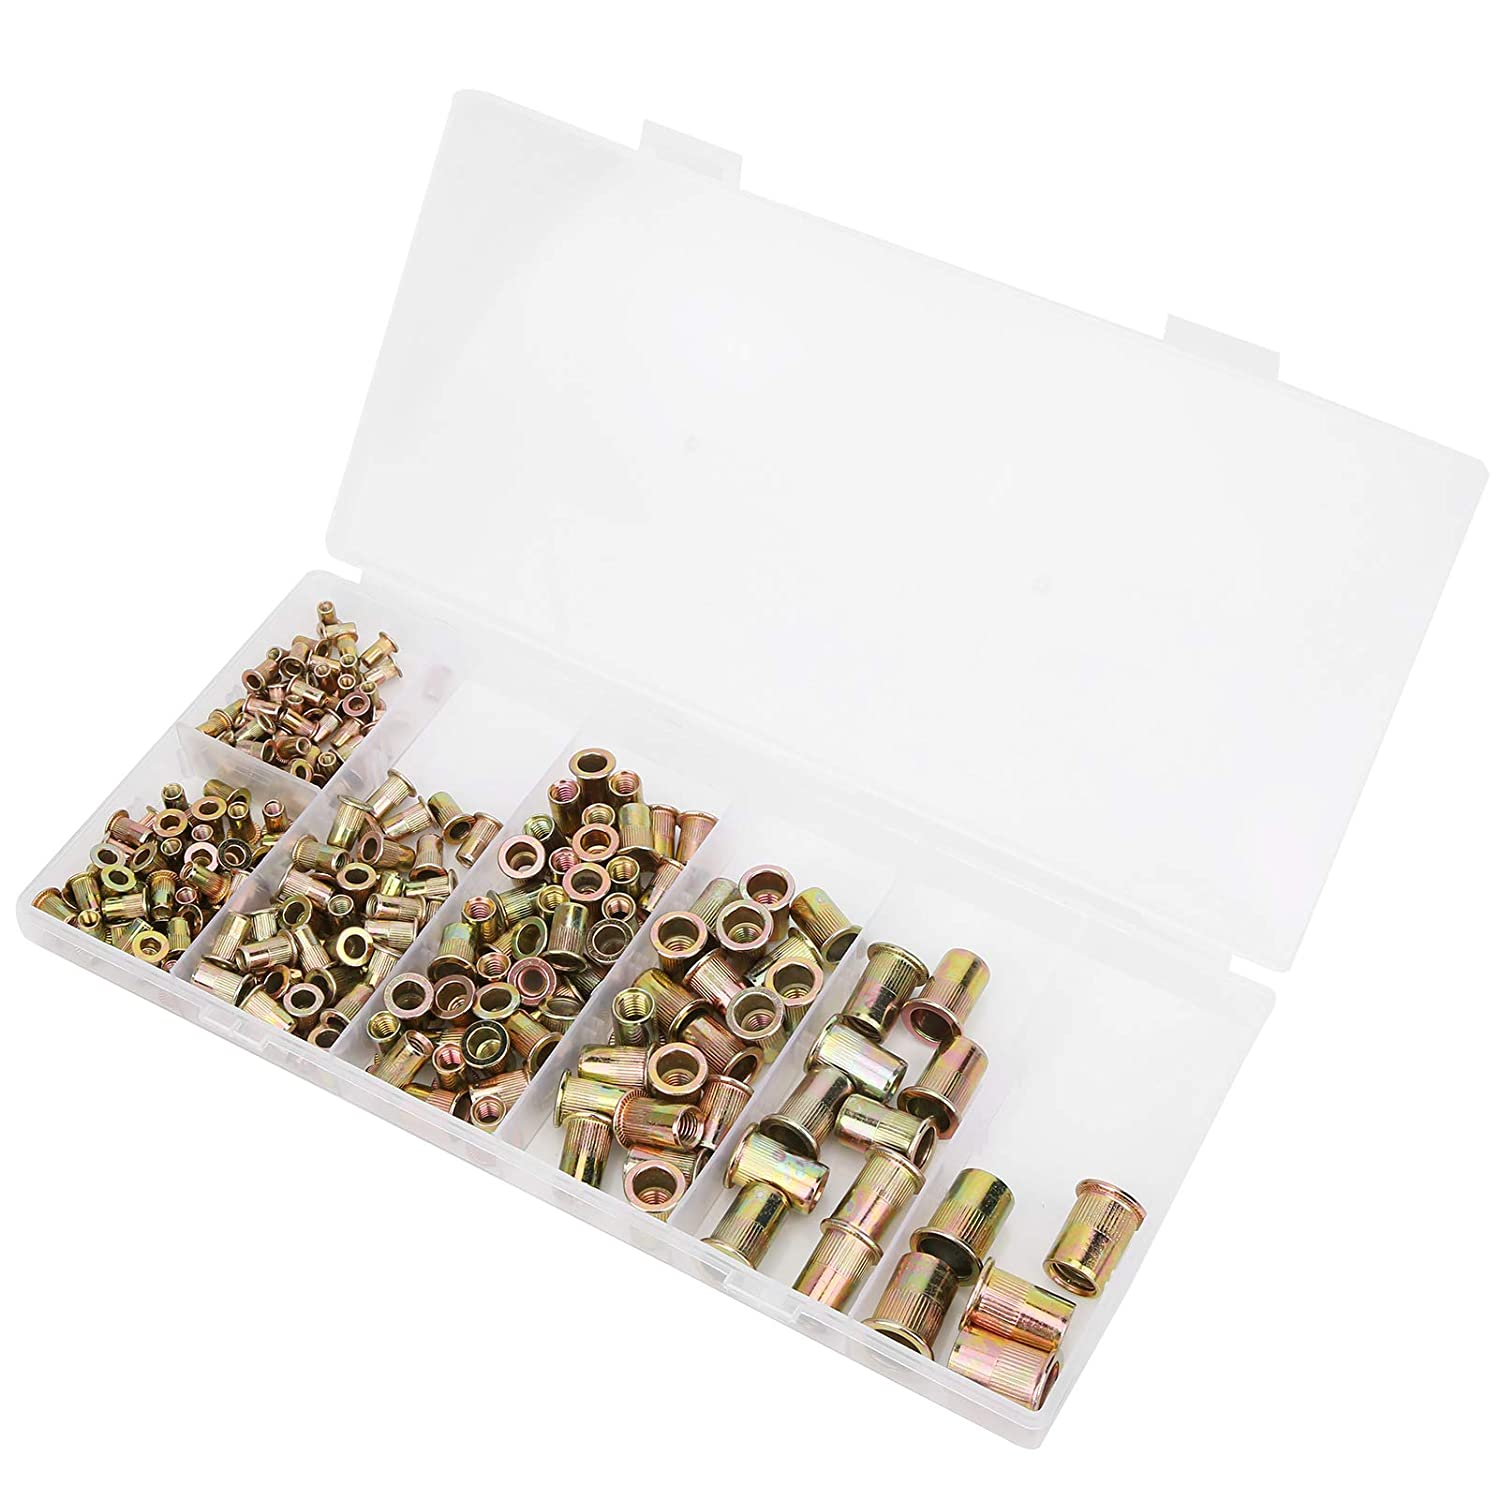 for The Various Metal Plates and Pipes 225pcs Mixed Zinc Plated Carbon Steel Rivet Nut Threaded Fastener Nut Set M3//4//5//6//8//10//12 Assortment Kit